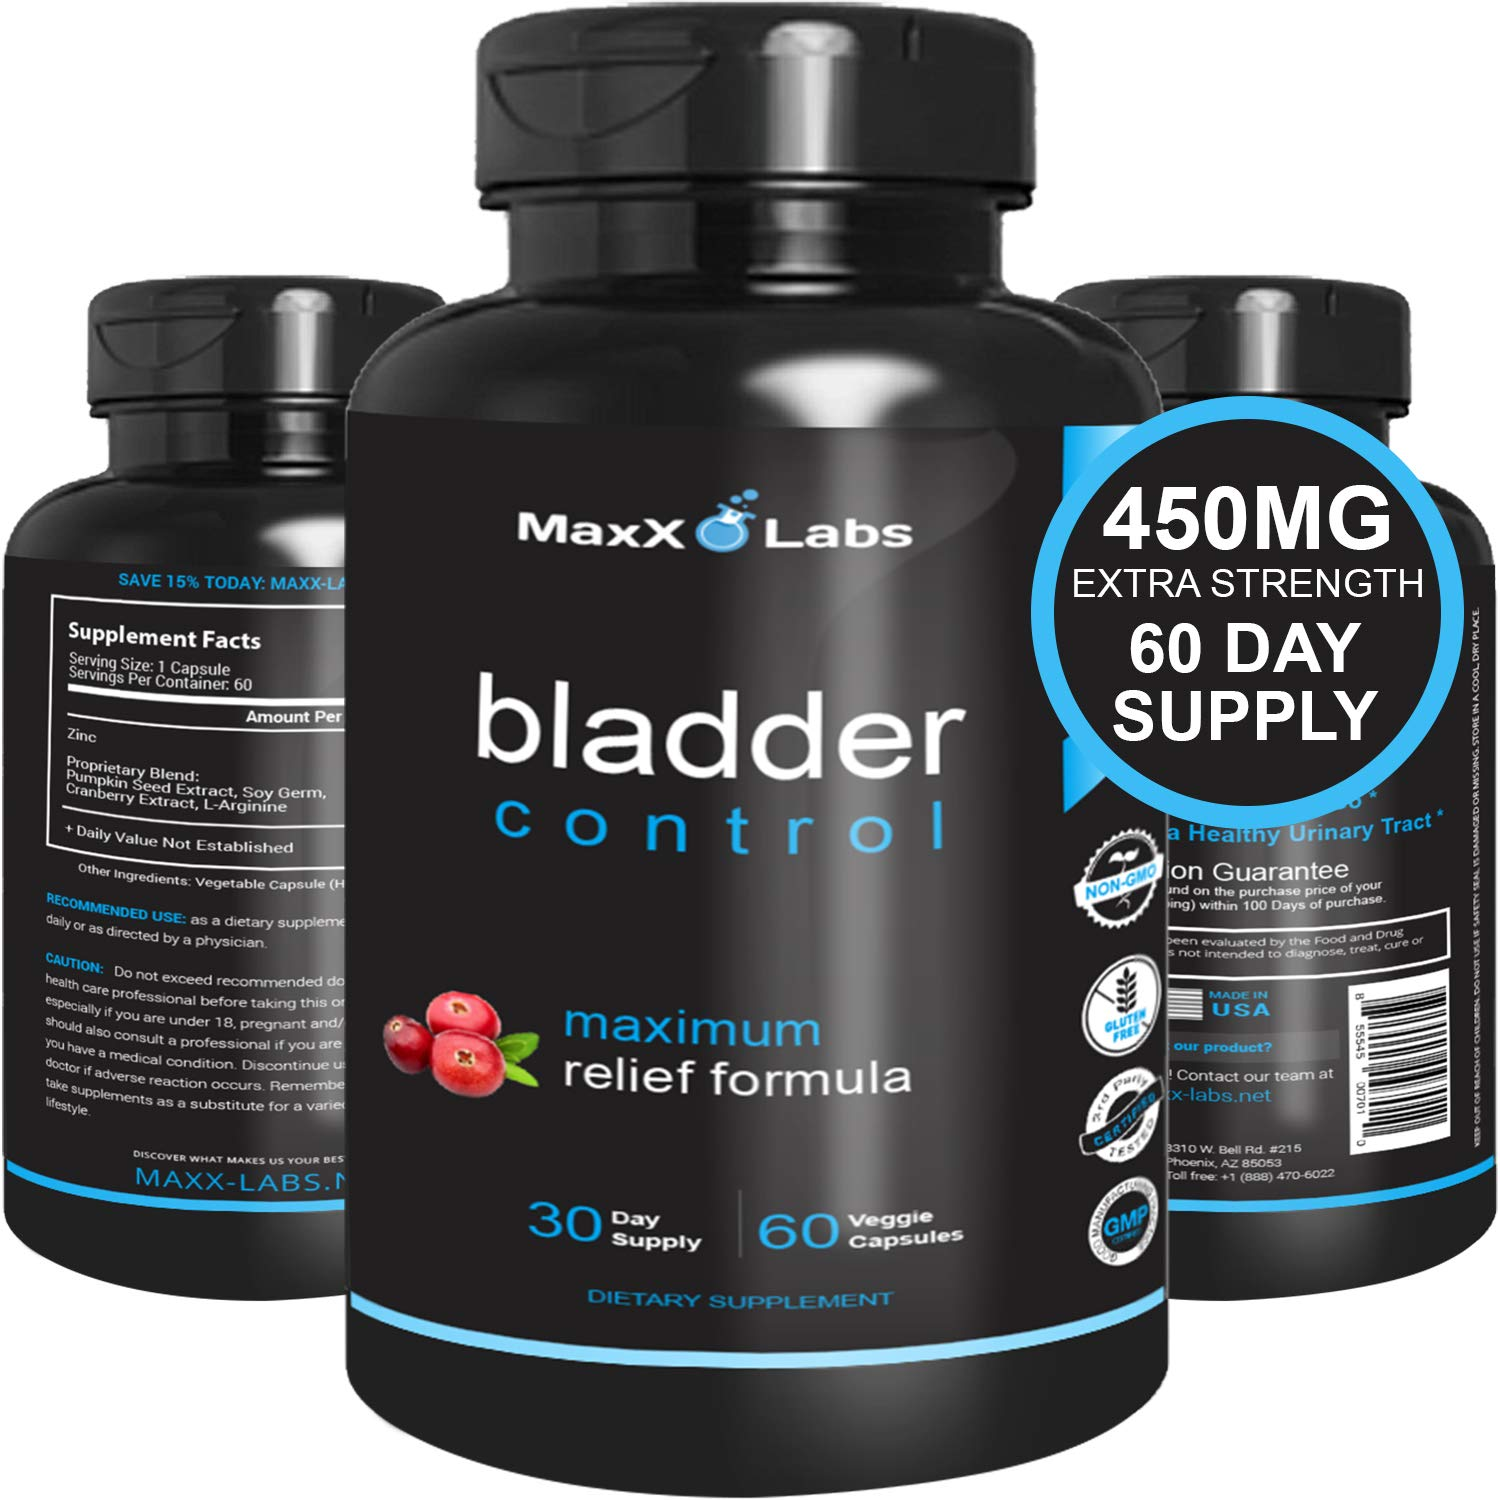 Bladder Control For Women - Potent Blend of L-Arginine, Cranberry Extract, and Pumpkin Extract - Useful for Urinary Tract Infection Treatment - 60 Caps